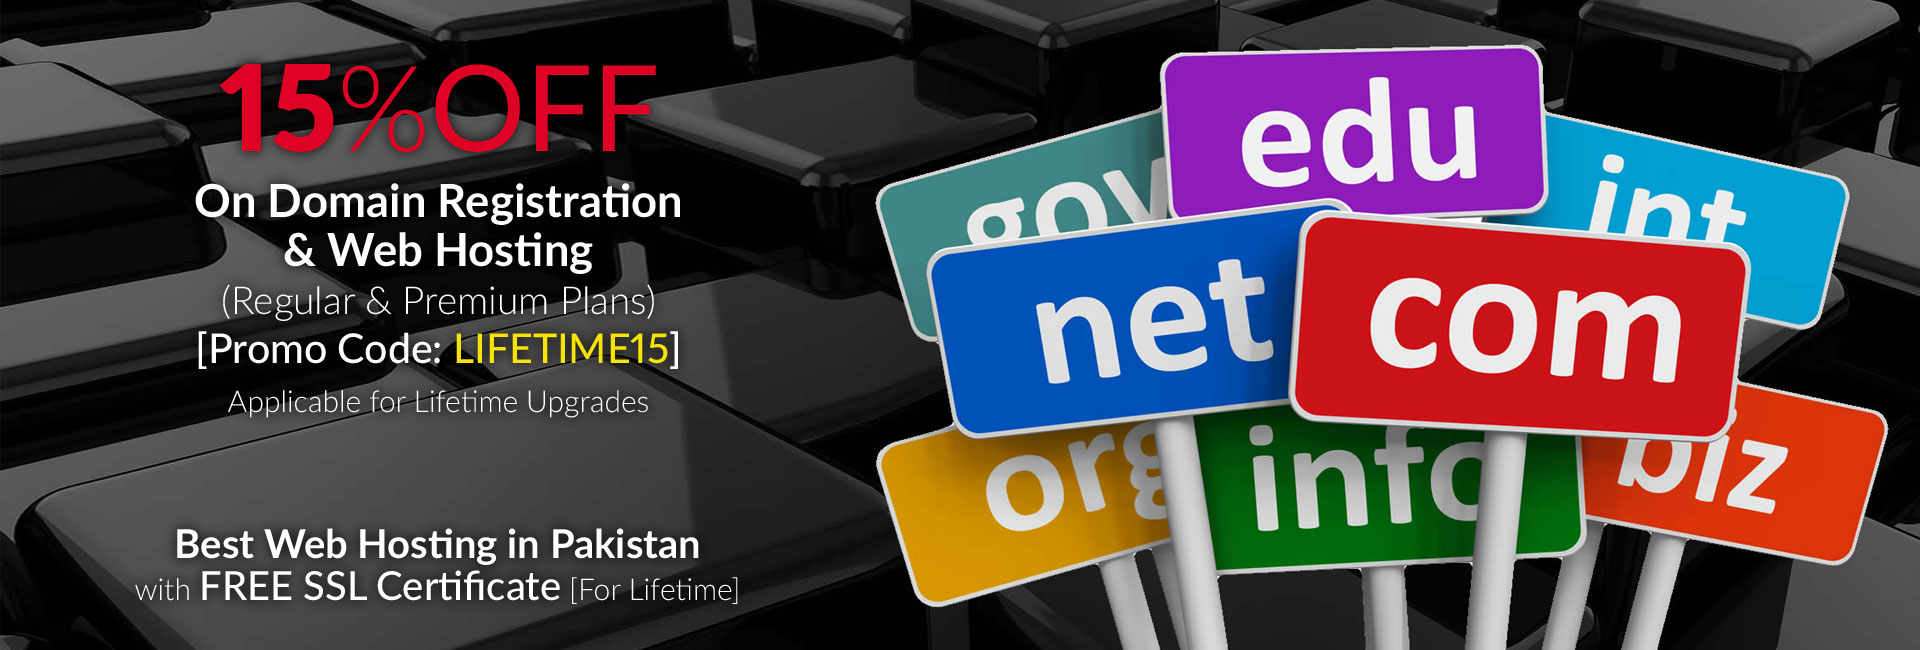 15 Percent OFF on Domain Registration and Web Hosting in Pakistan